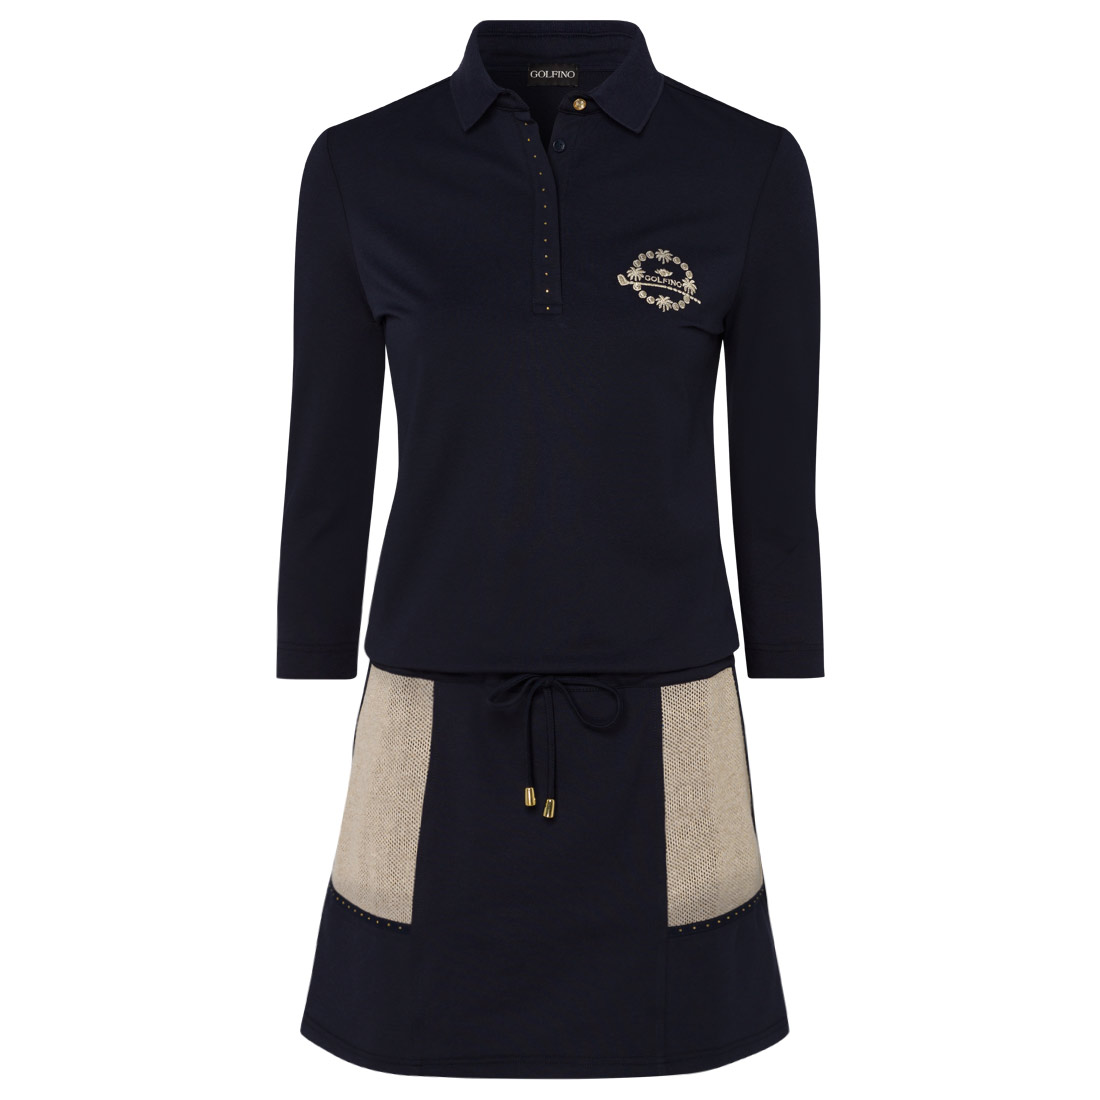 Ladies' short-sleeved golf dress in UV piqué material with skort